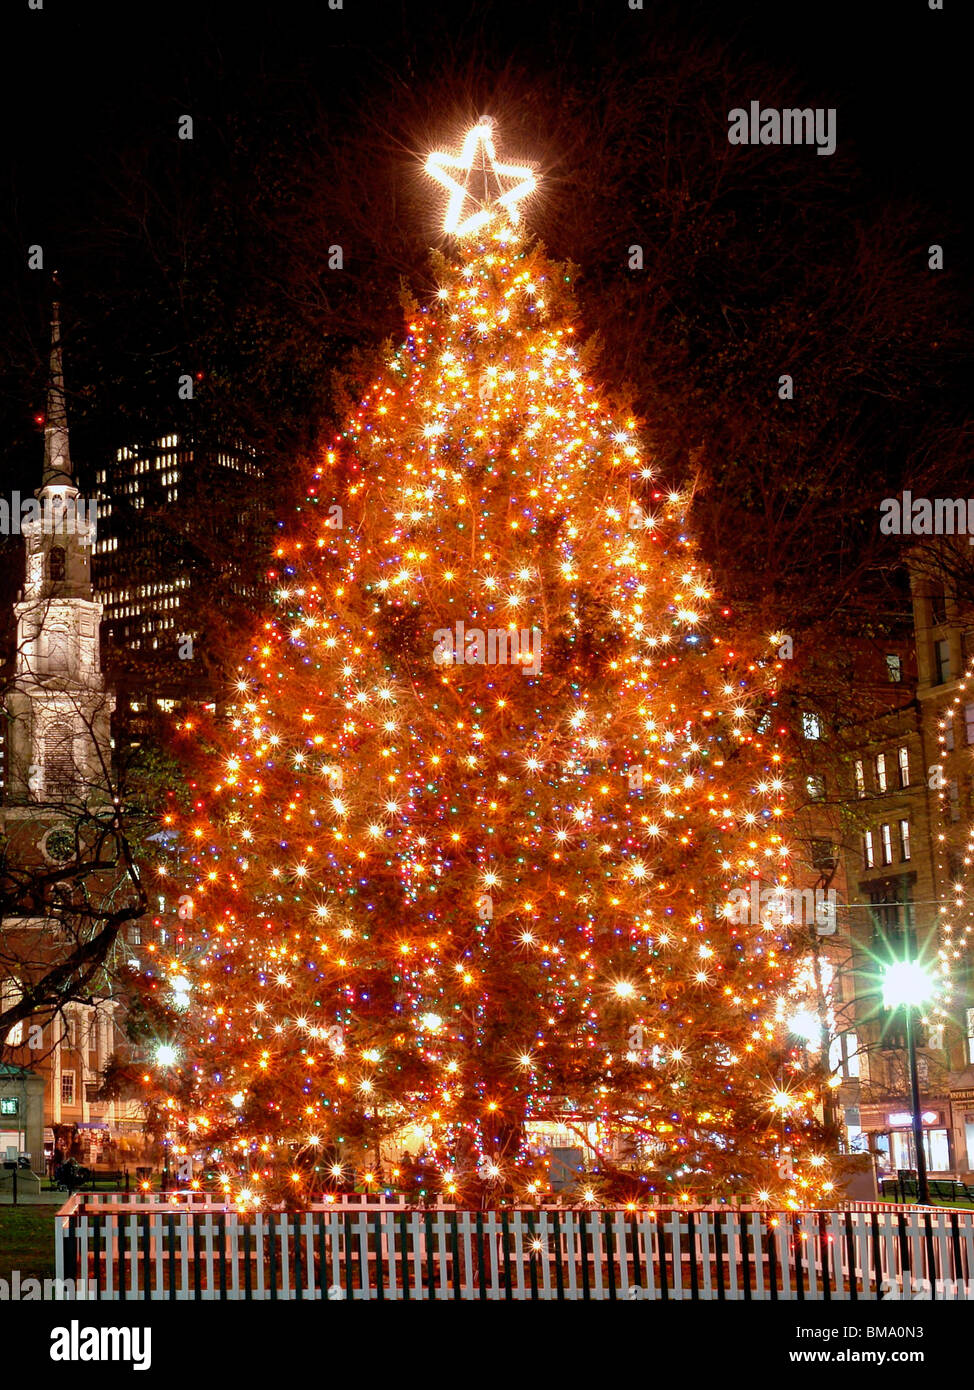 large decorated outdoor christmas tree on boston common lit up at